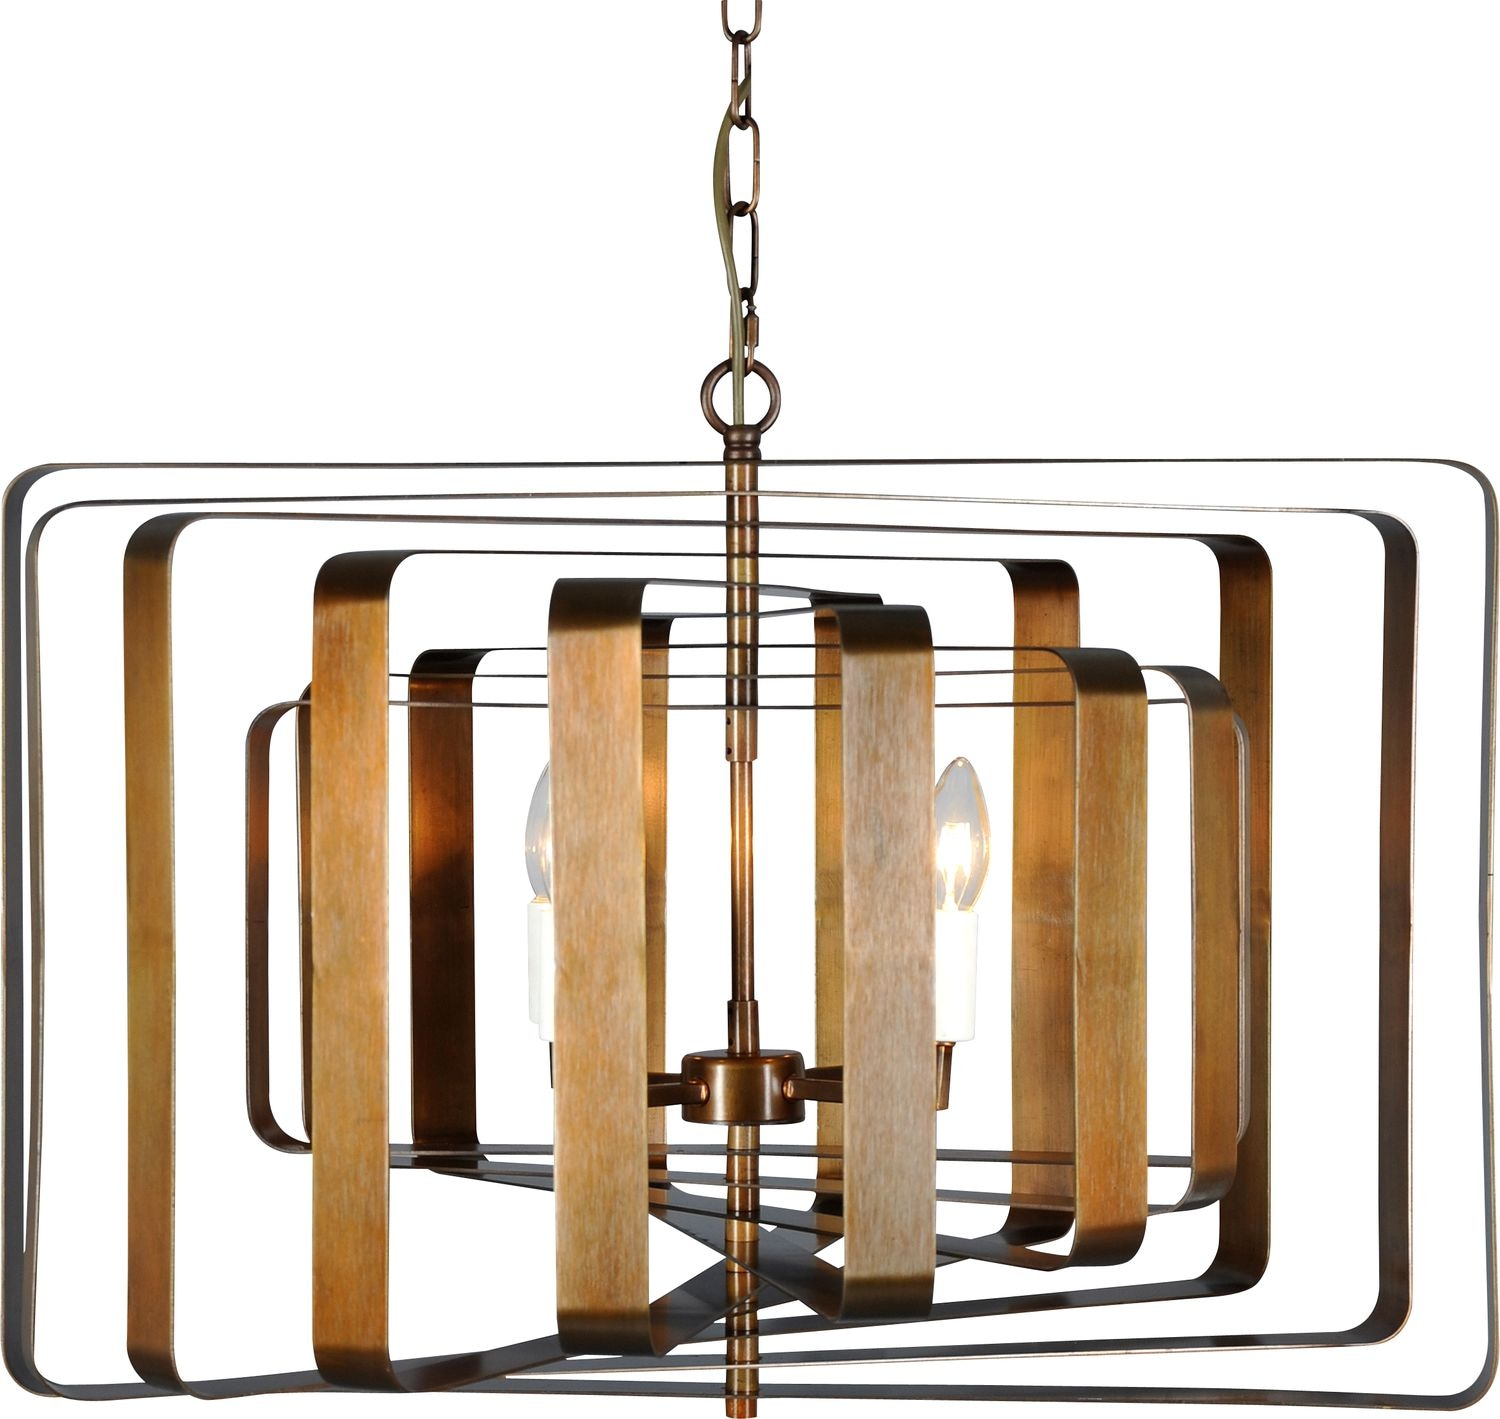 Home Accessories - Kensington Chandelier